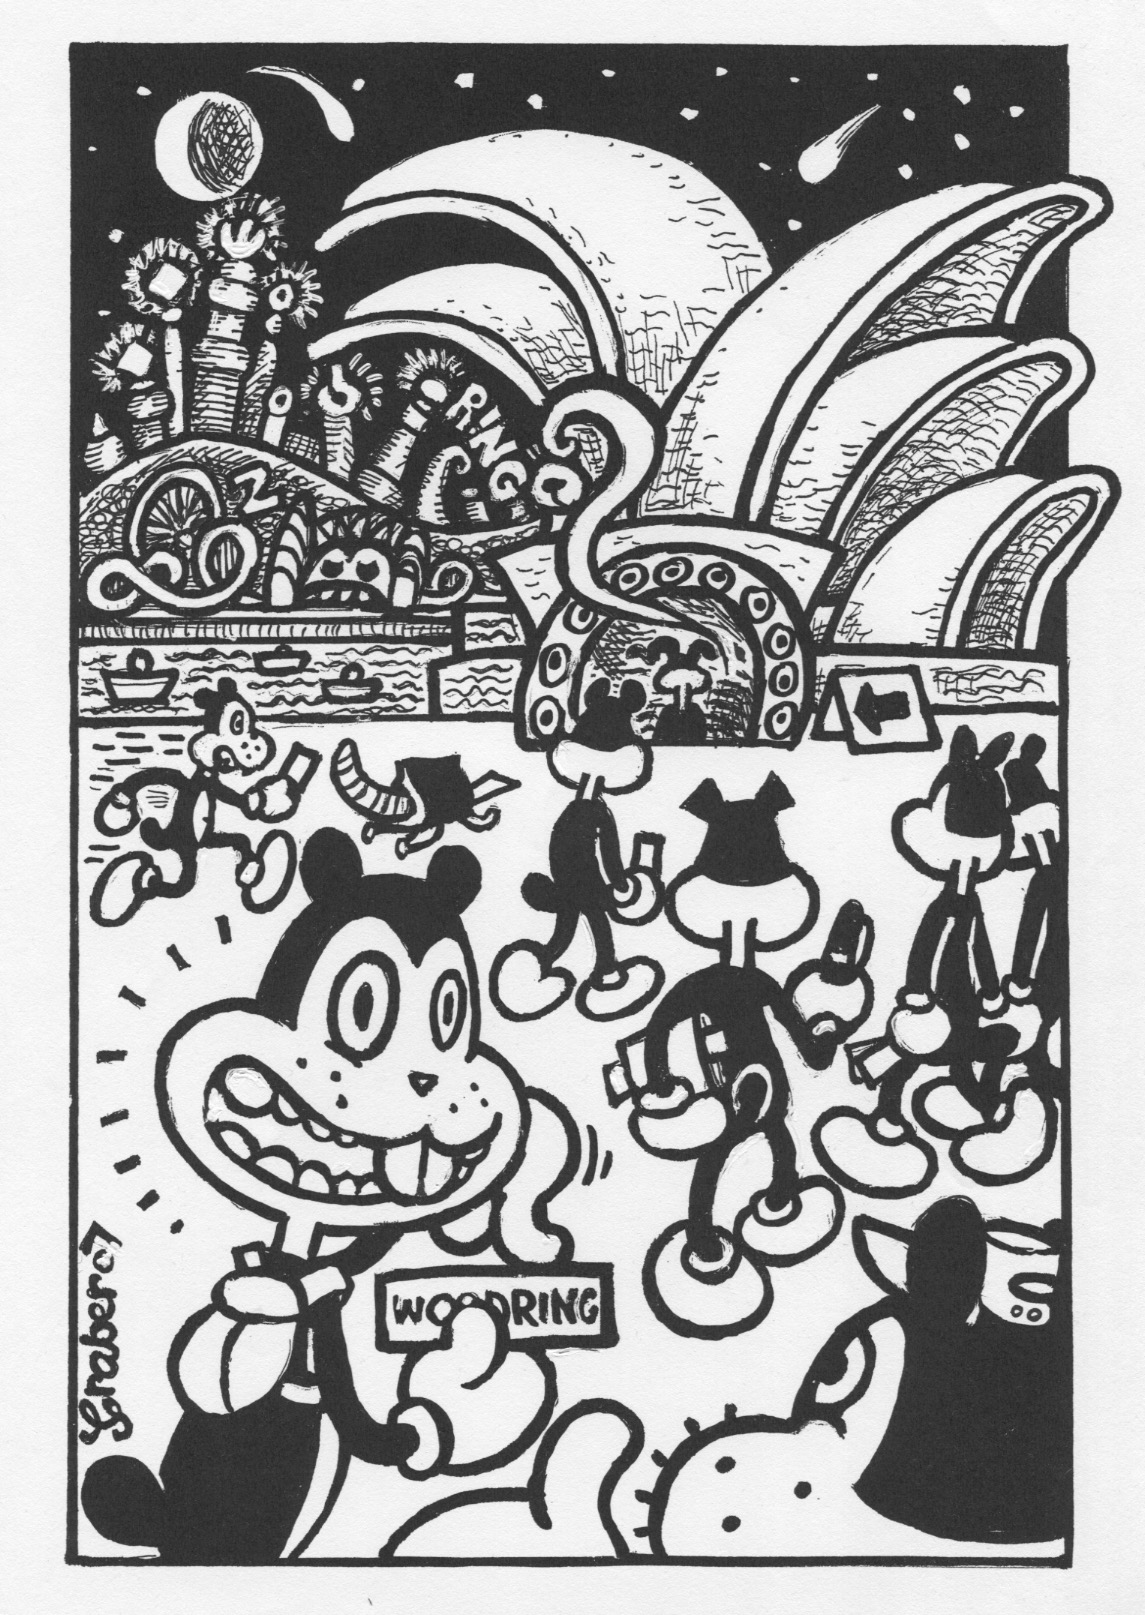 Woodring at the Sydney Opera House homage cartoon by Louise Graber.